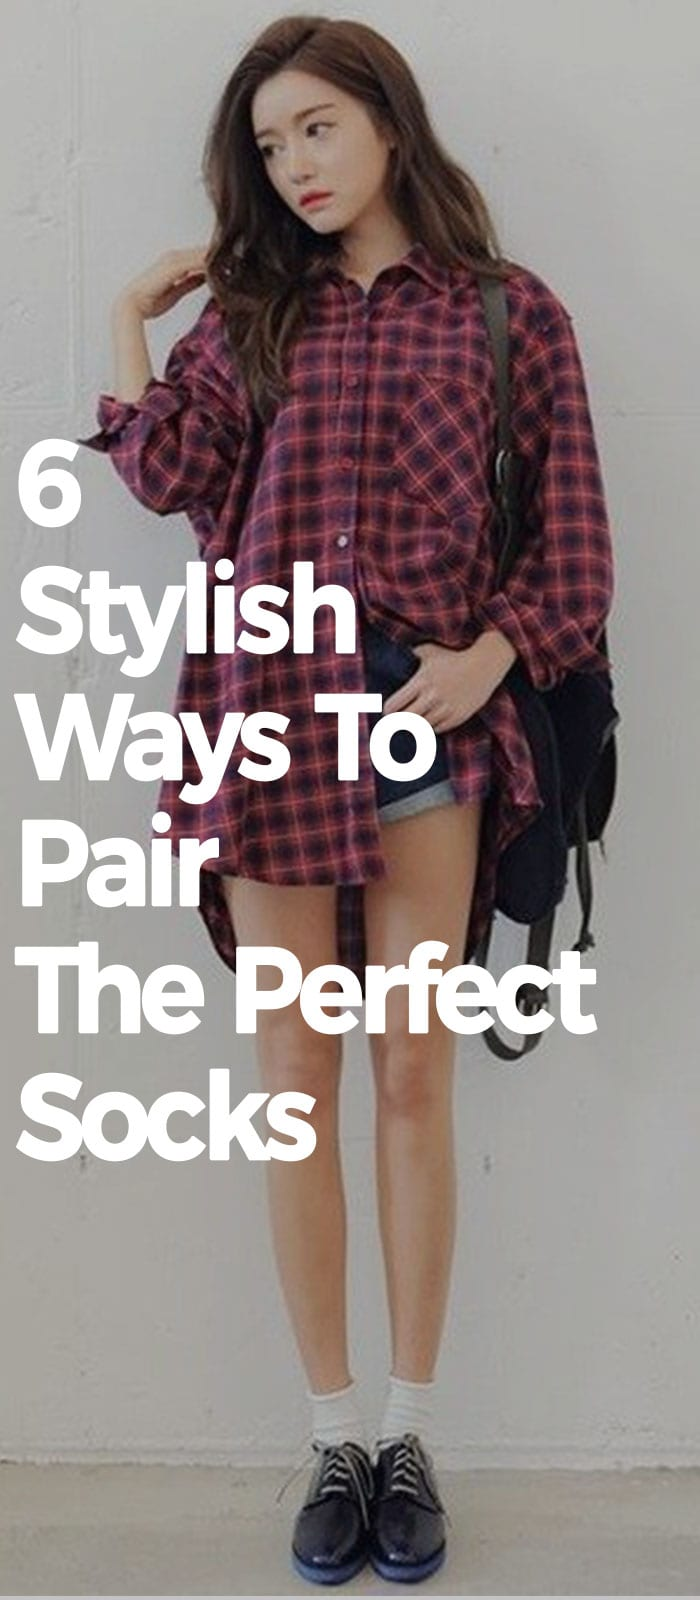 6 Stylish Ways To Pair The Perfect Sock